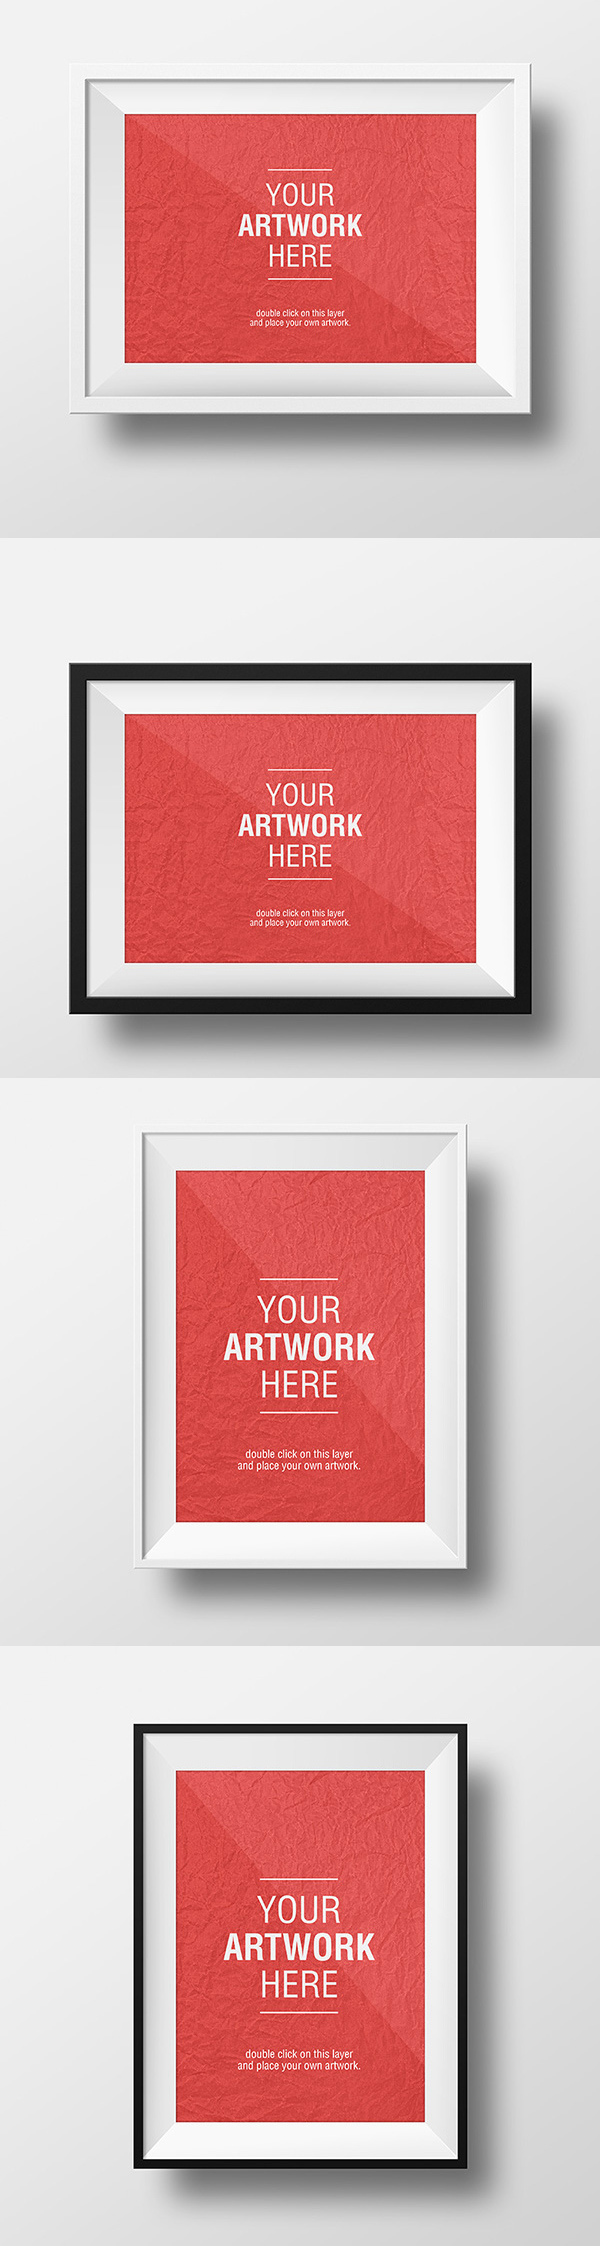 17artwork-frame-psd-mockups